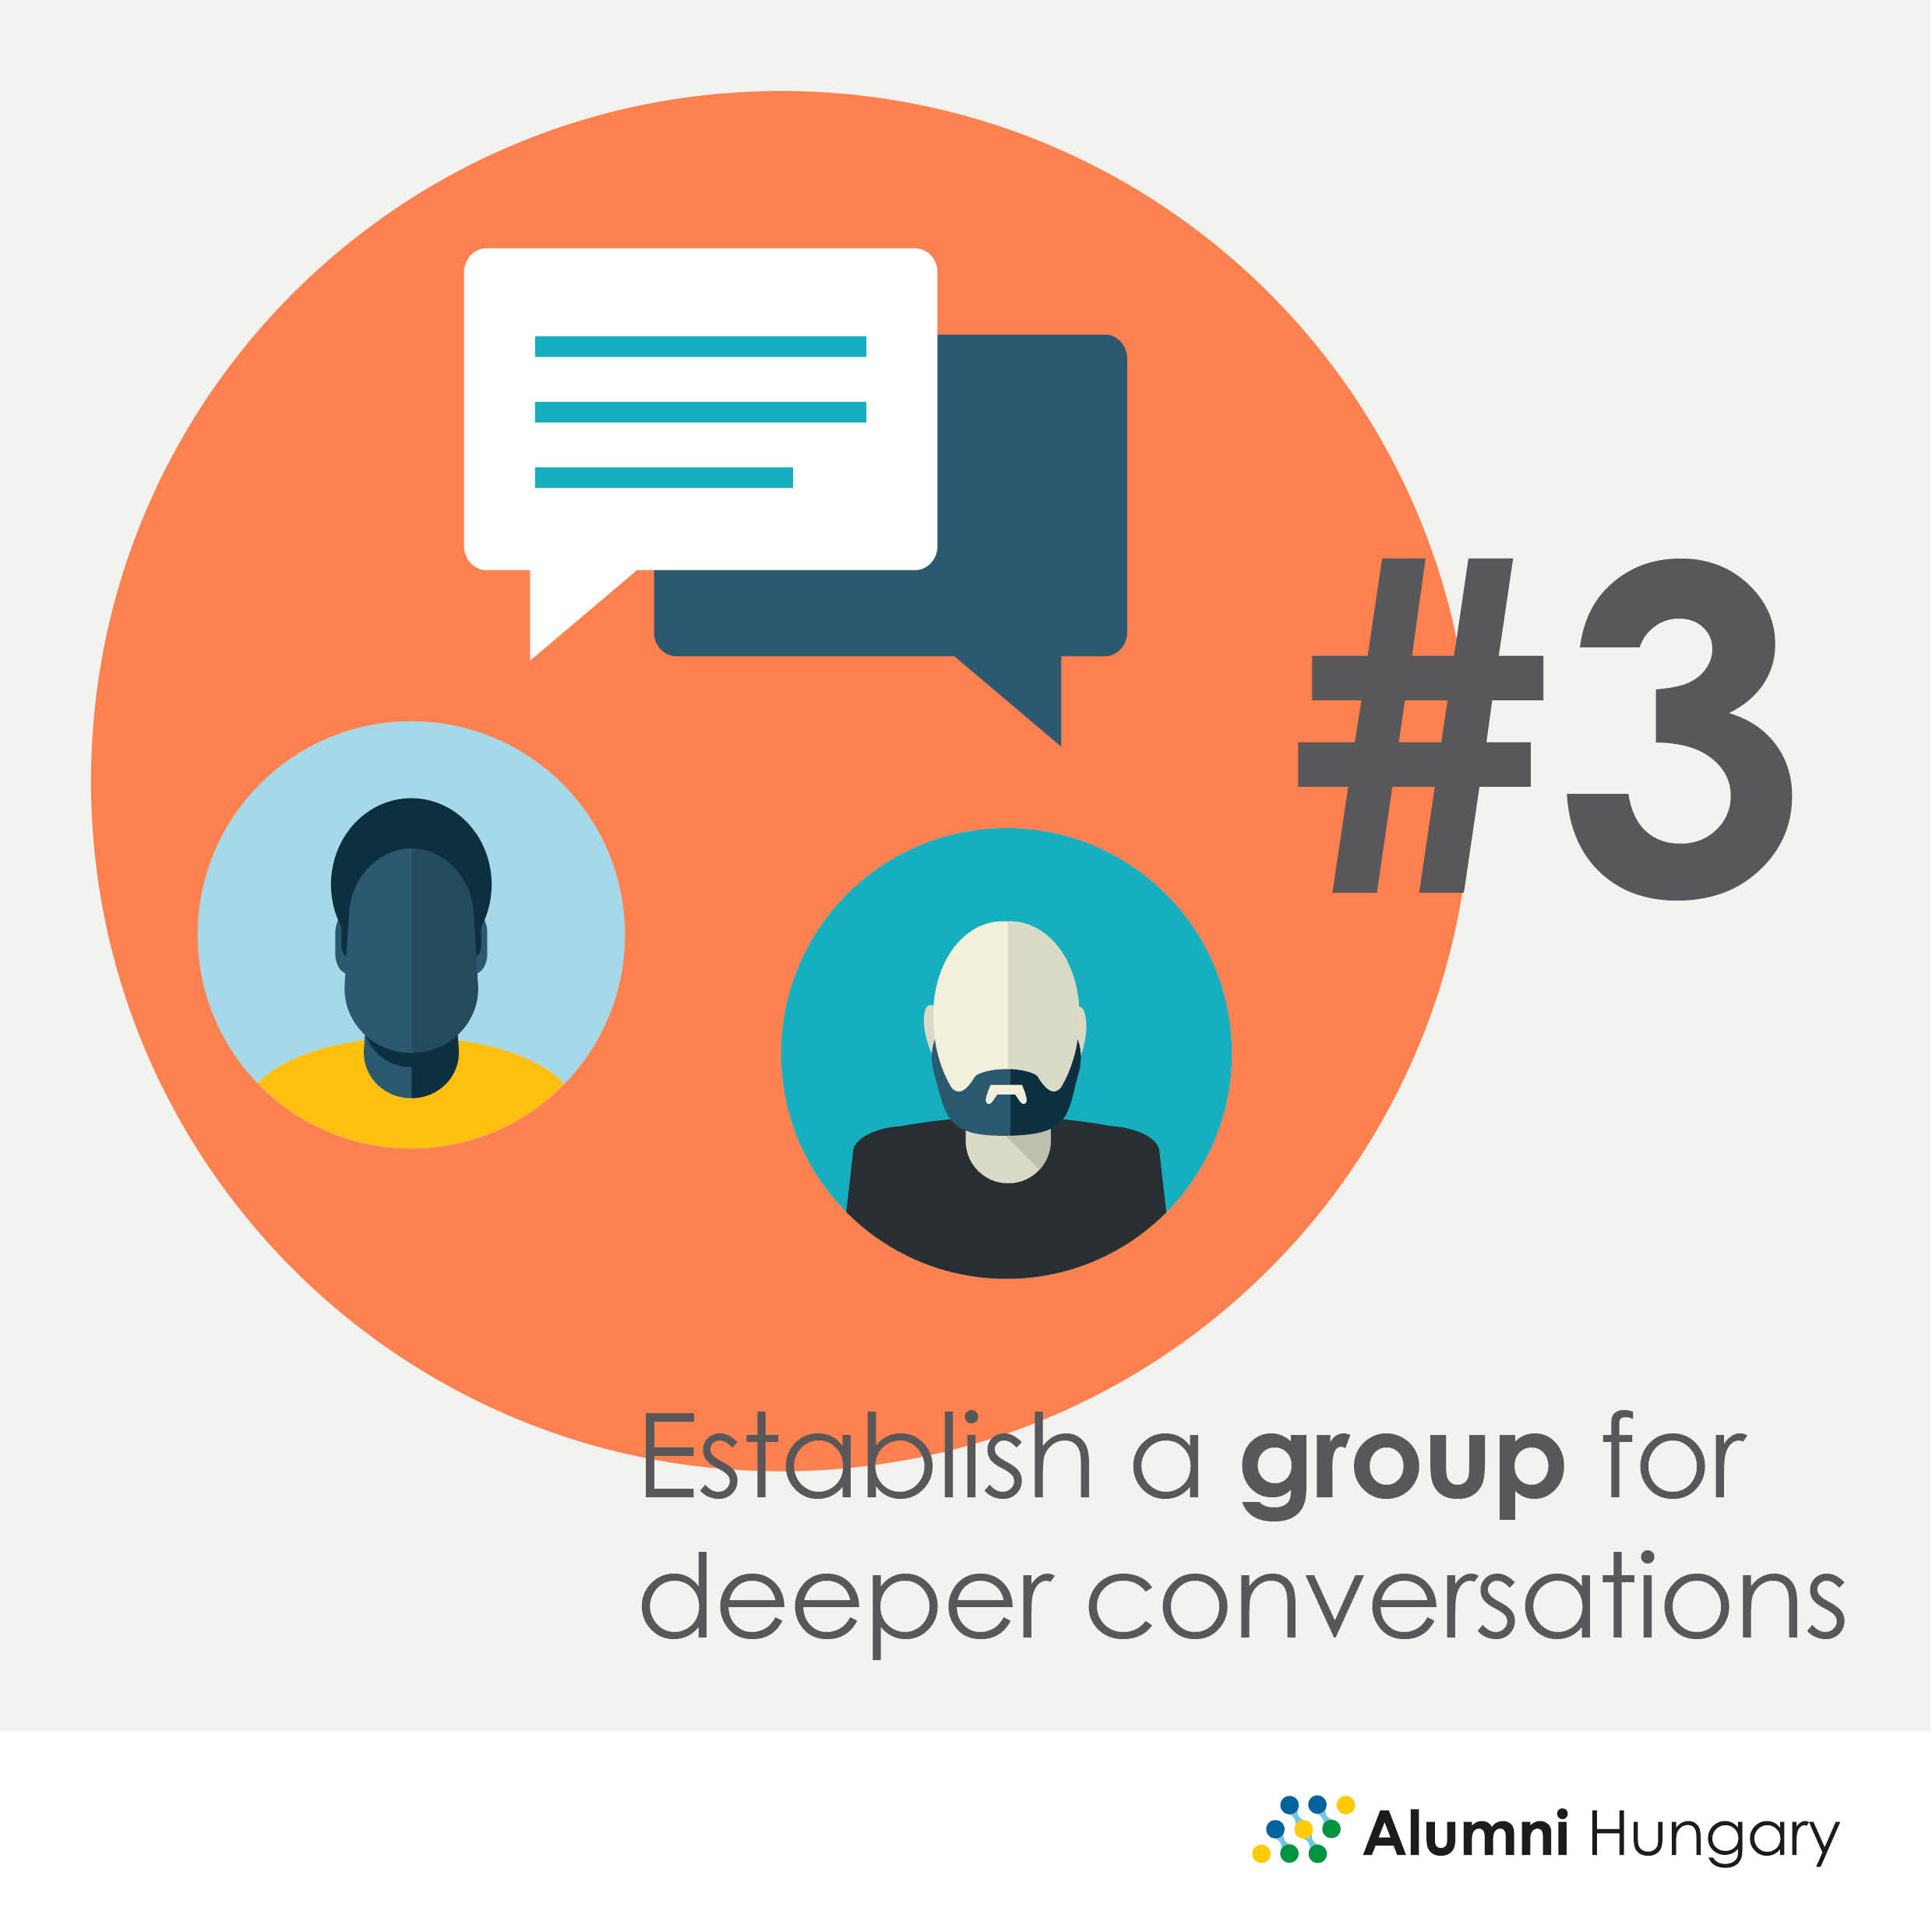 Establish a group for deeper conversations